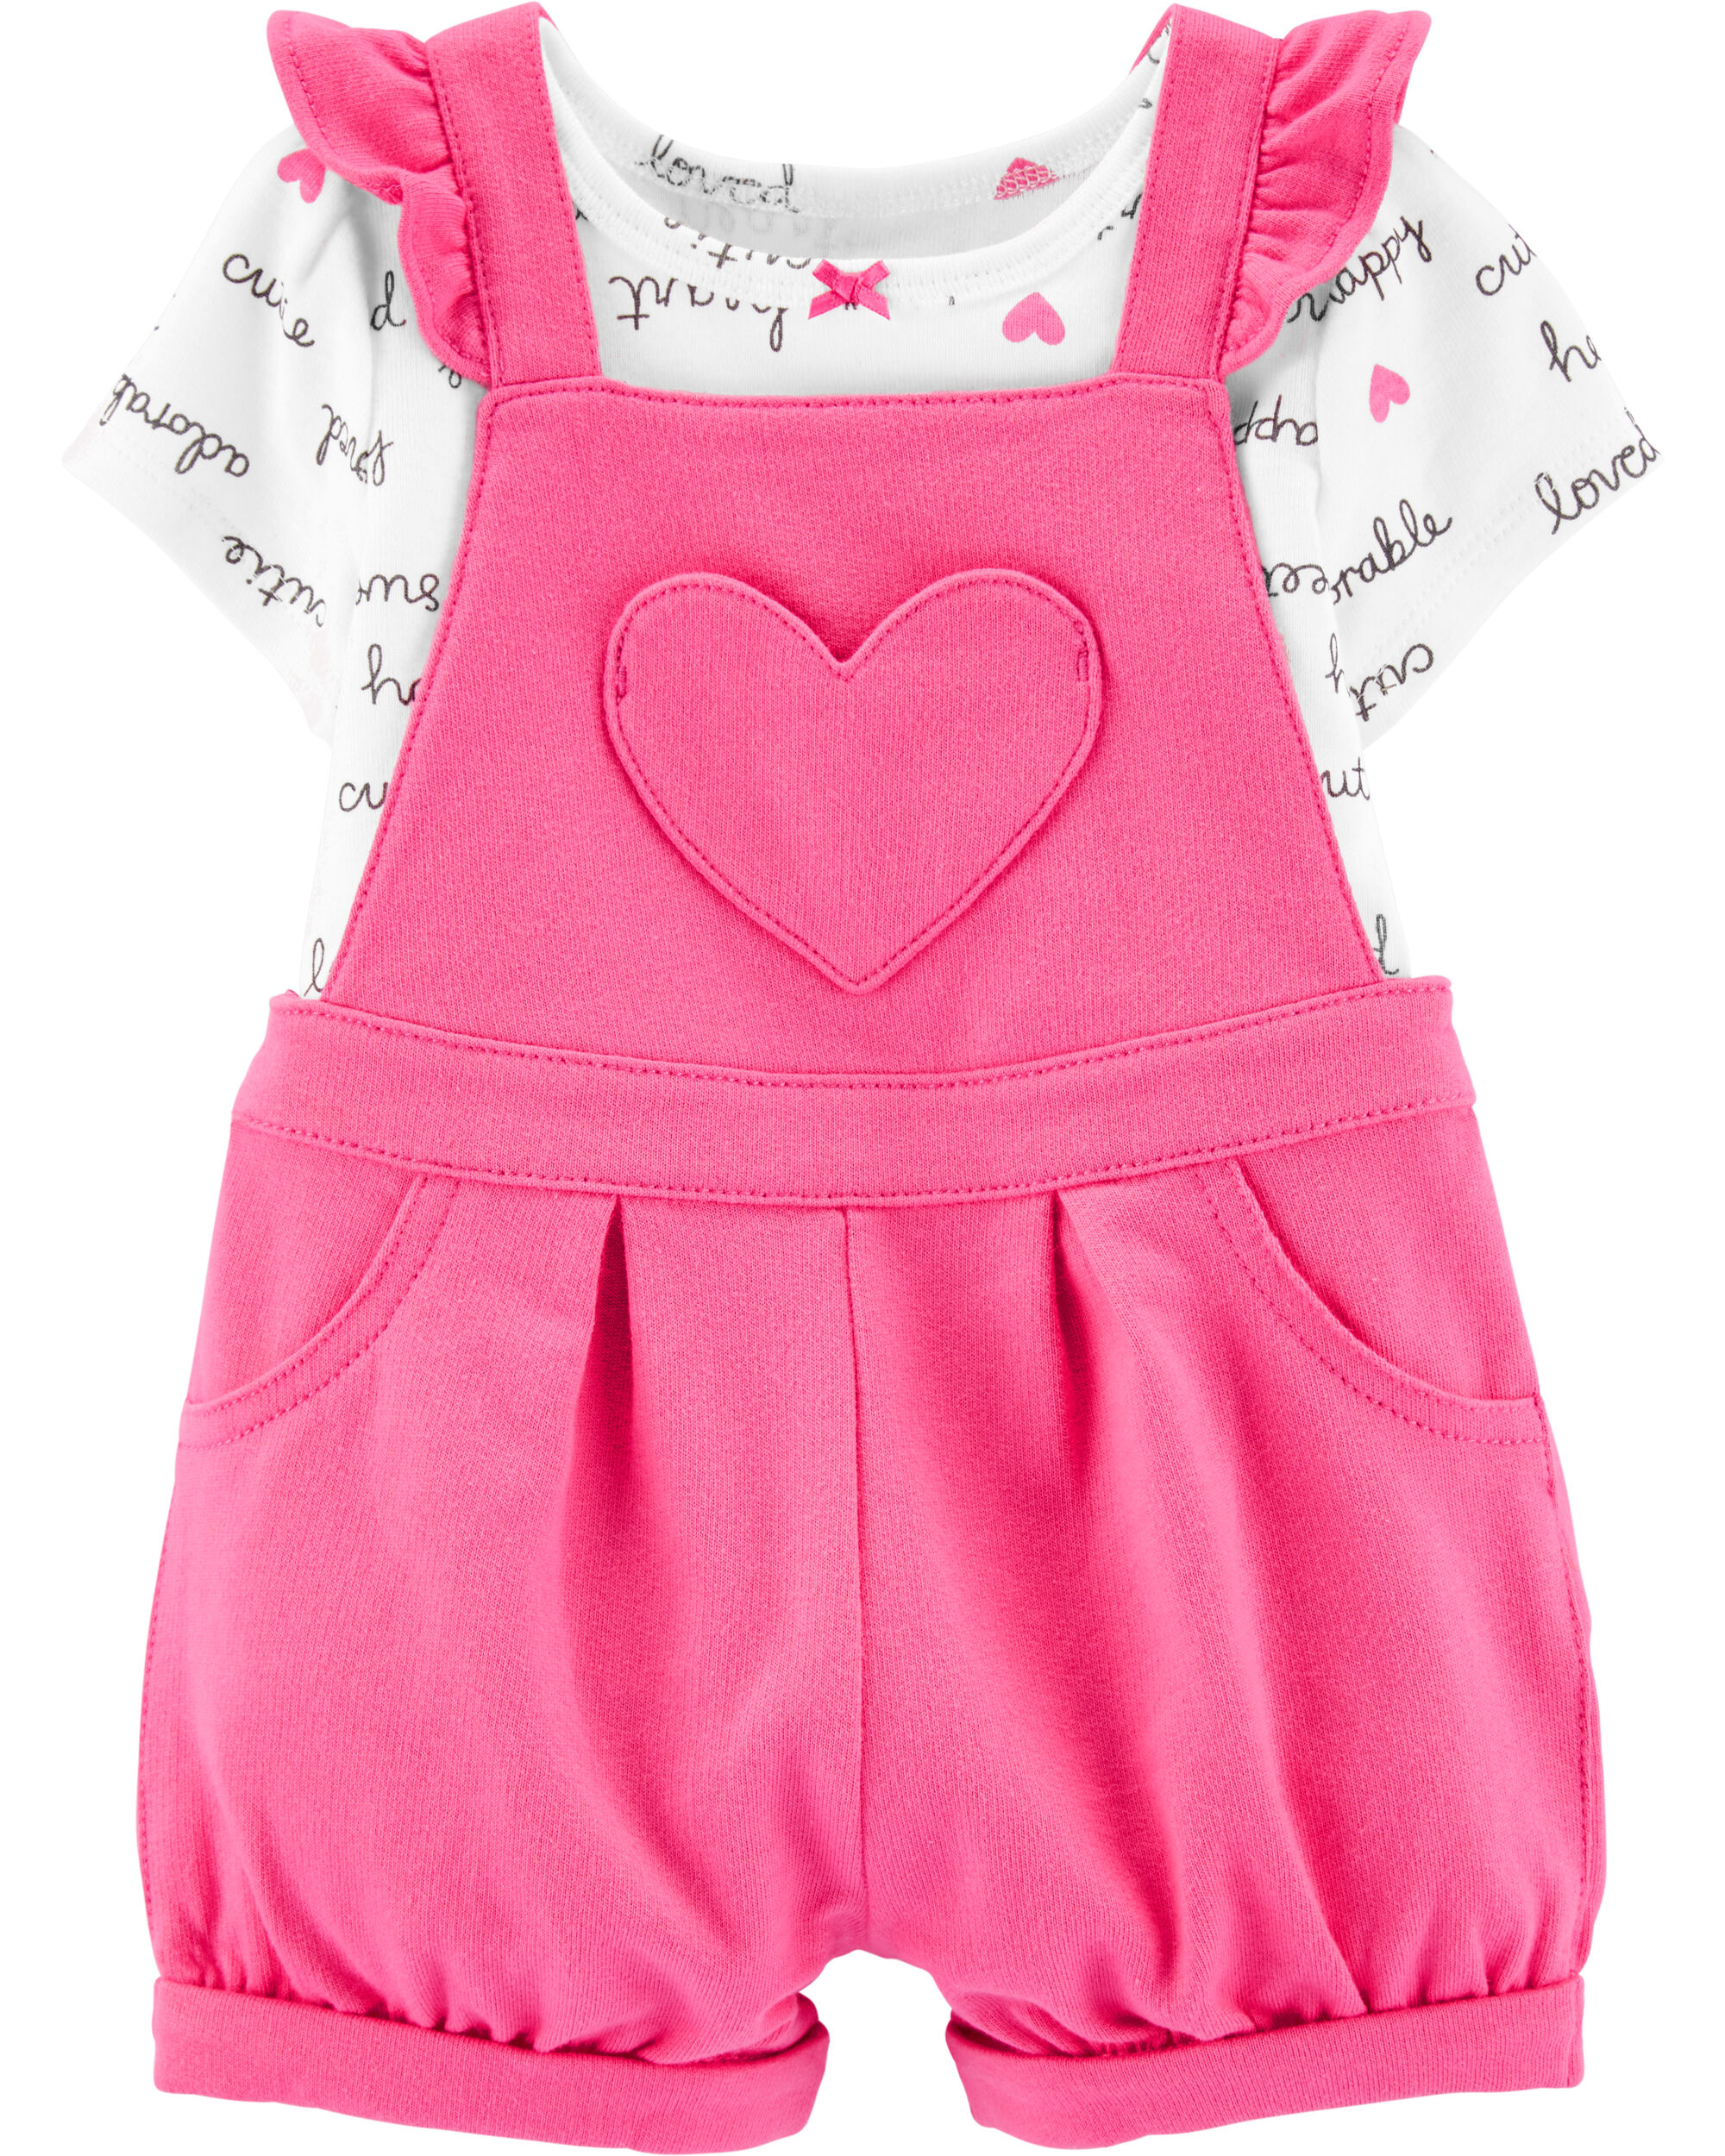 2-Piece Slogan Tee & Heart Shortalls Set